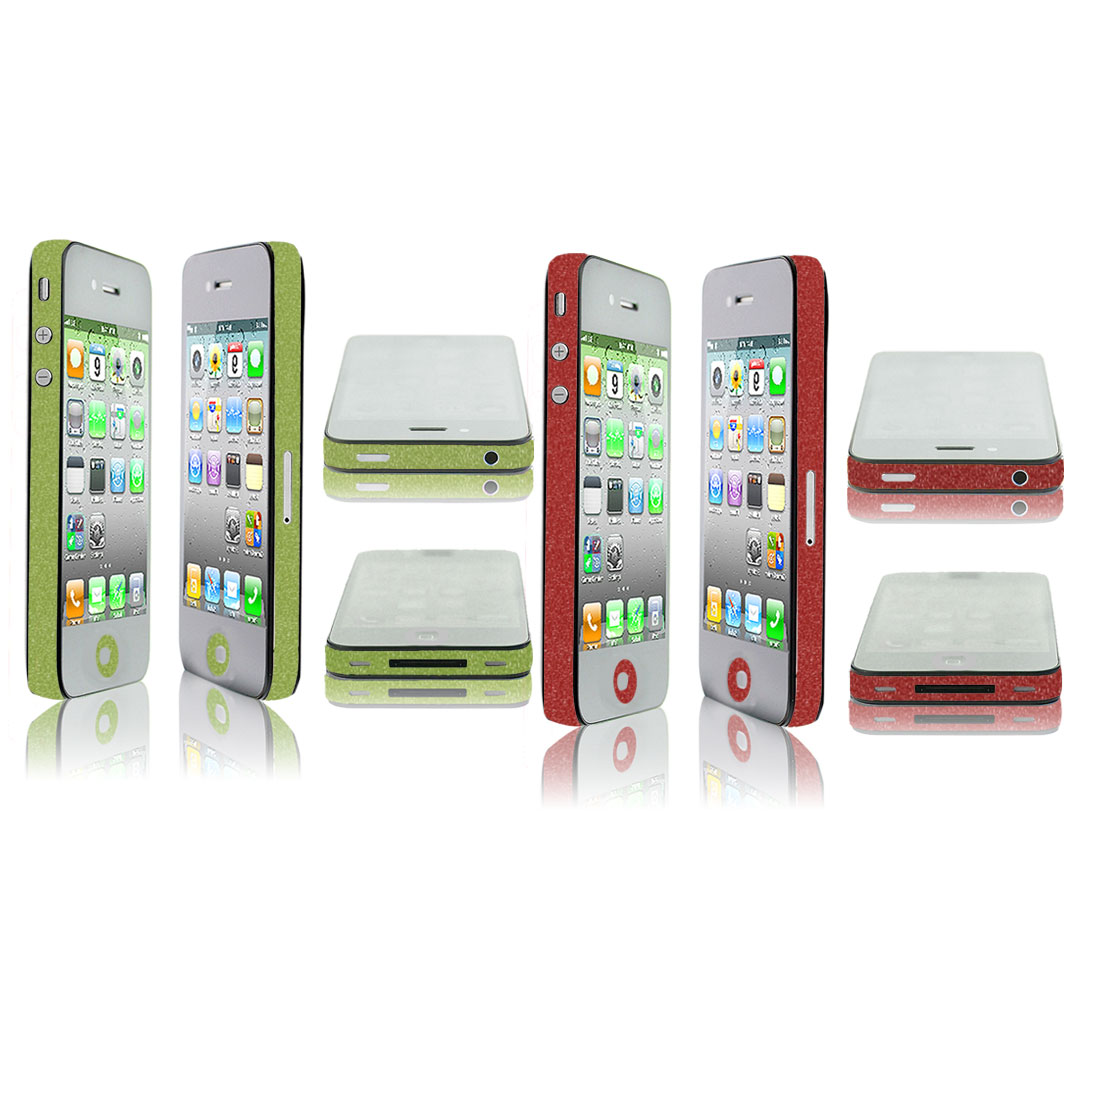 2 Pcs Red Green Edge Wrap Sticker Decal Cover Decor Set for iPhone 4 4G 4S 4GS